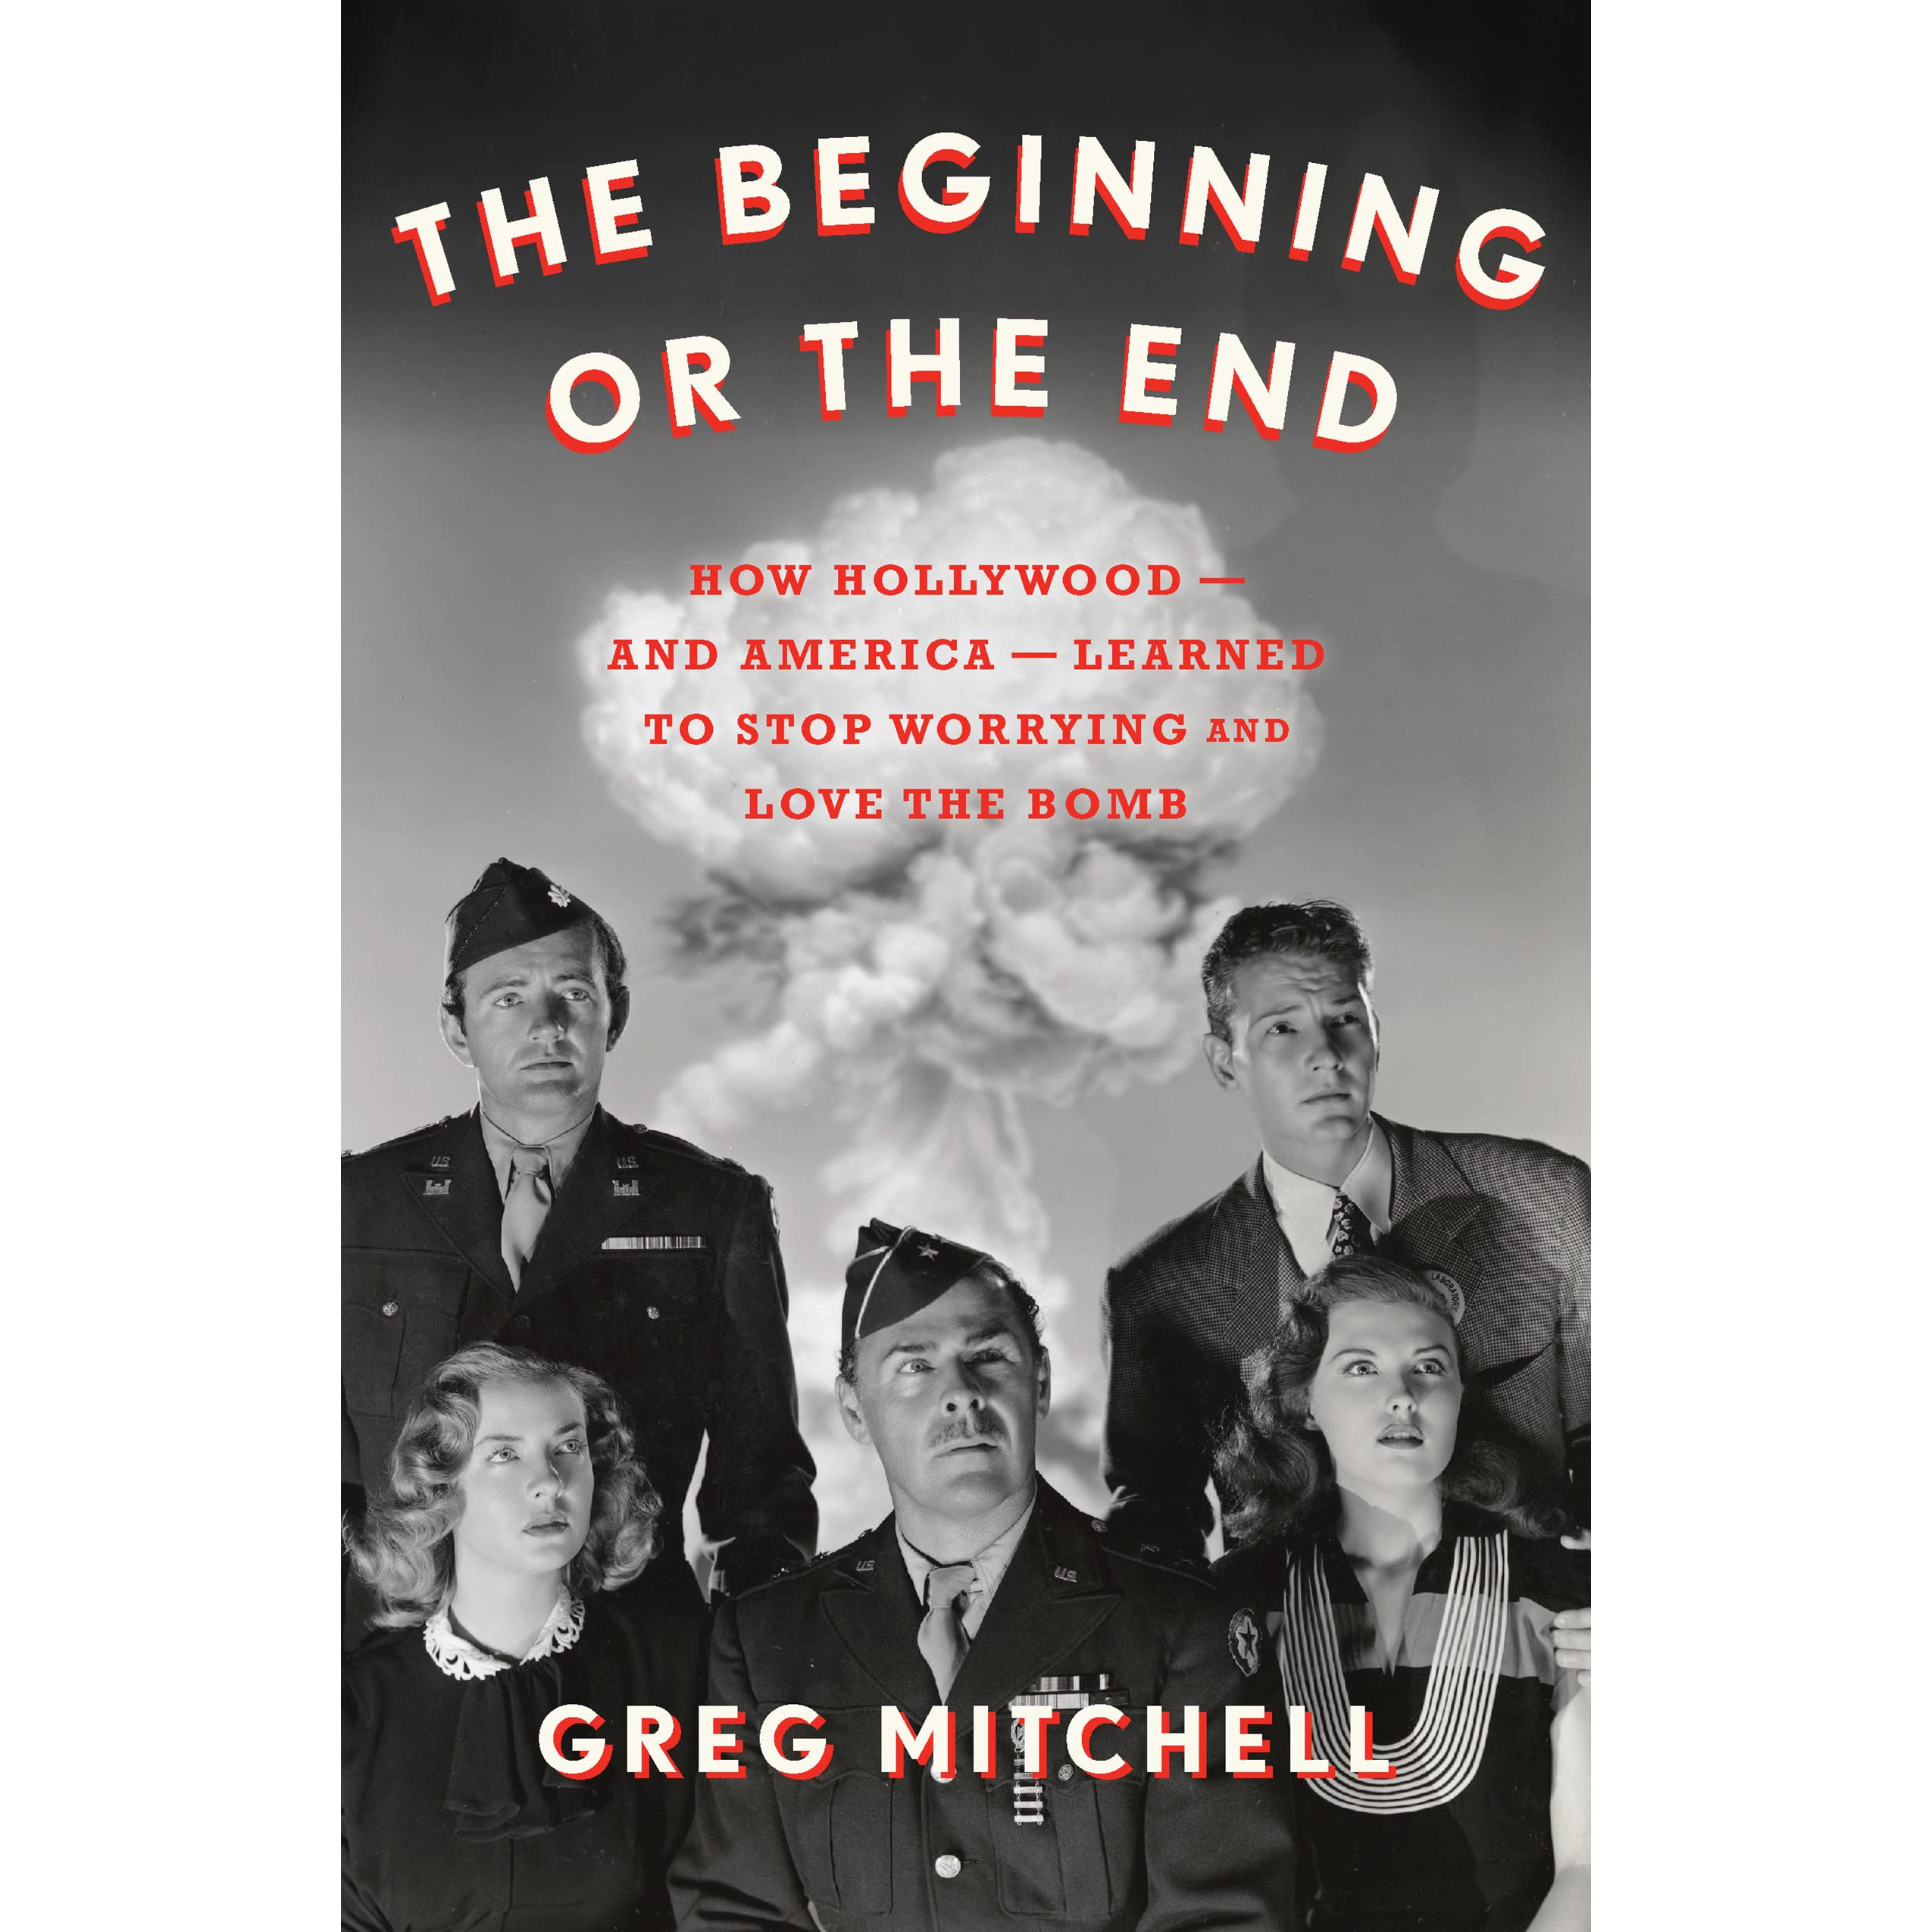 The Beginning Or The End How Hollywood And America Learned To Stop Worrying And Love The Bomb By Greg Mitchell